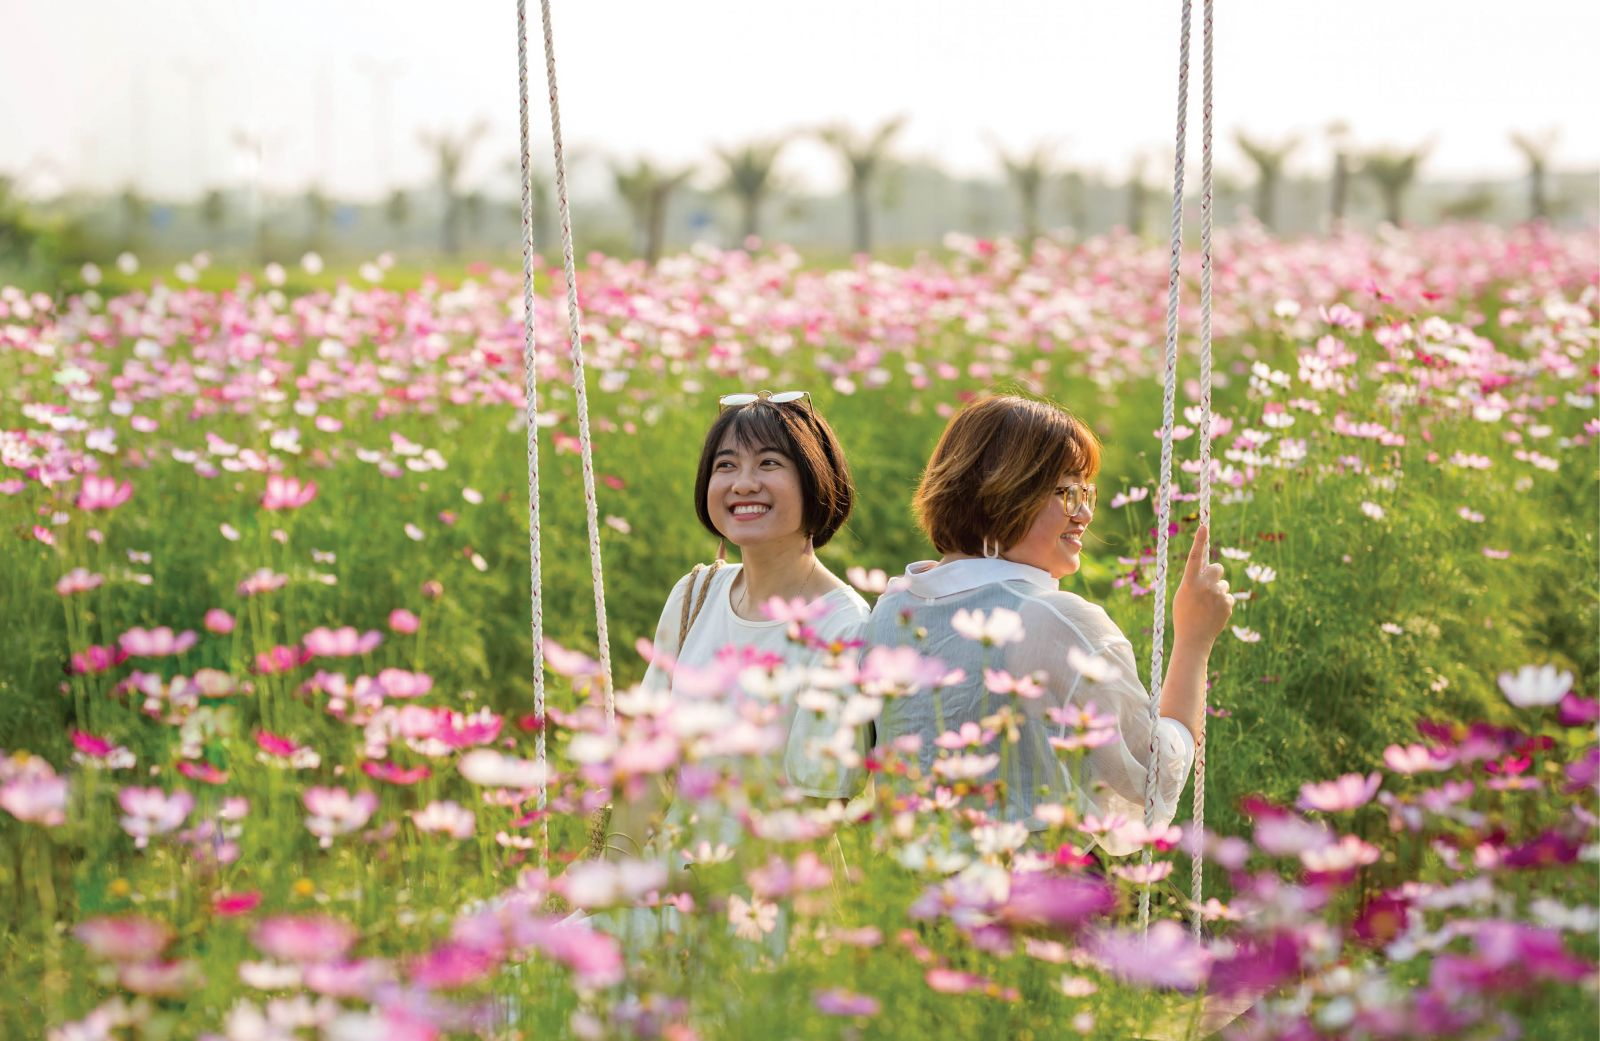 Lost in cosmos flowers